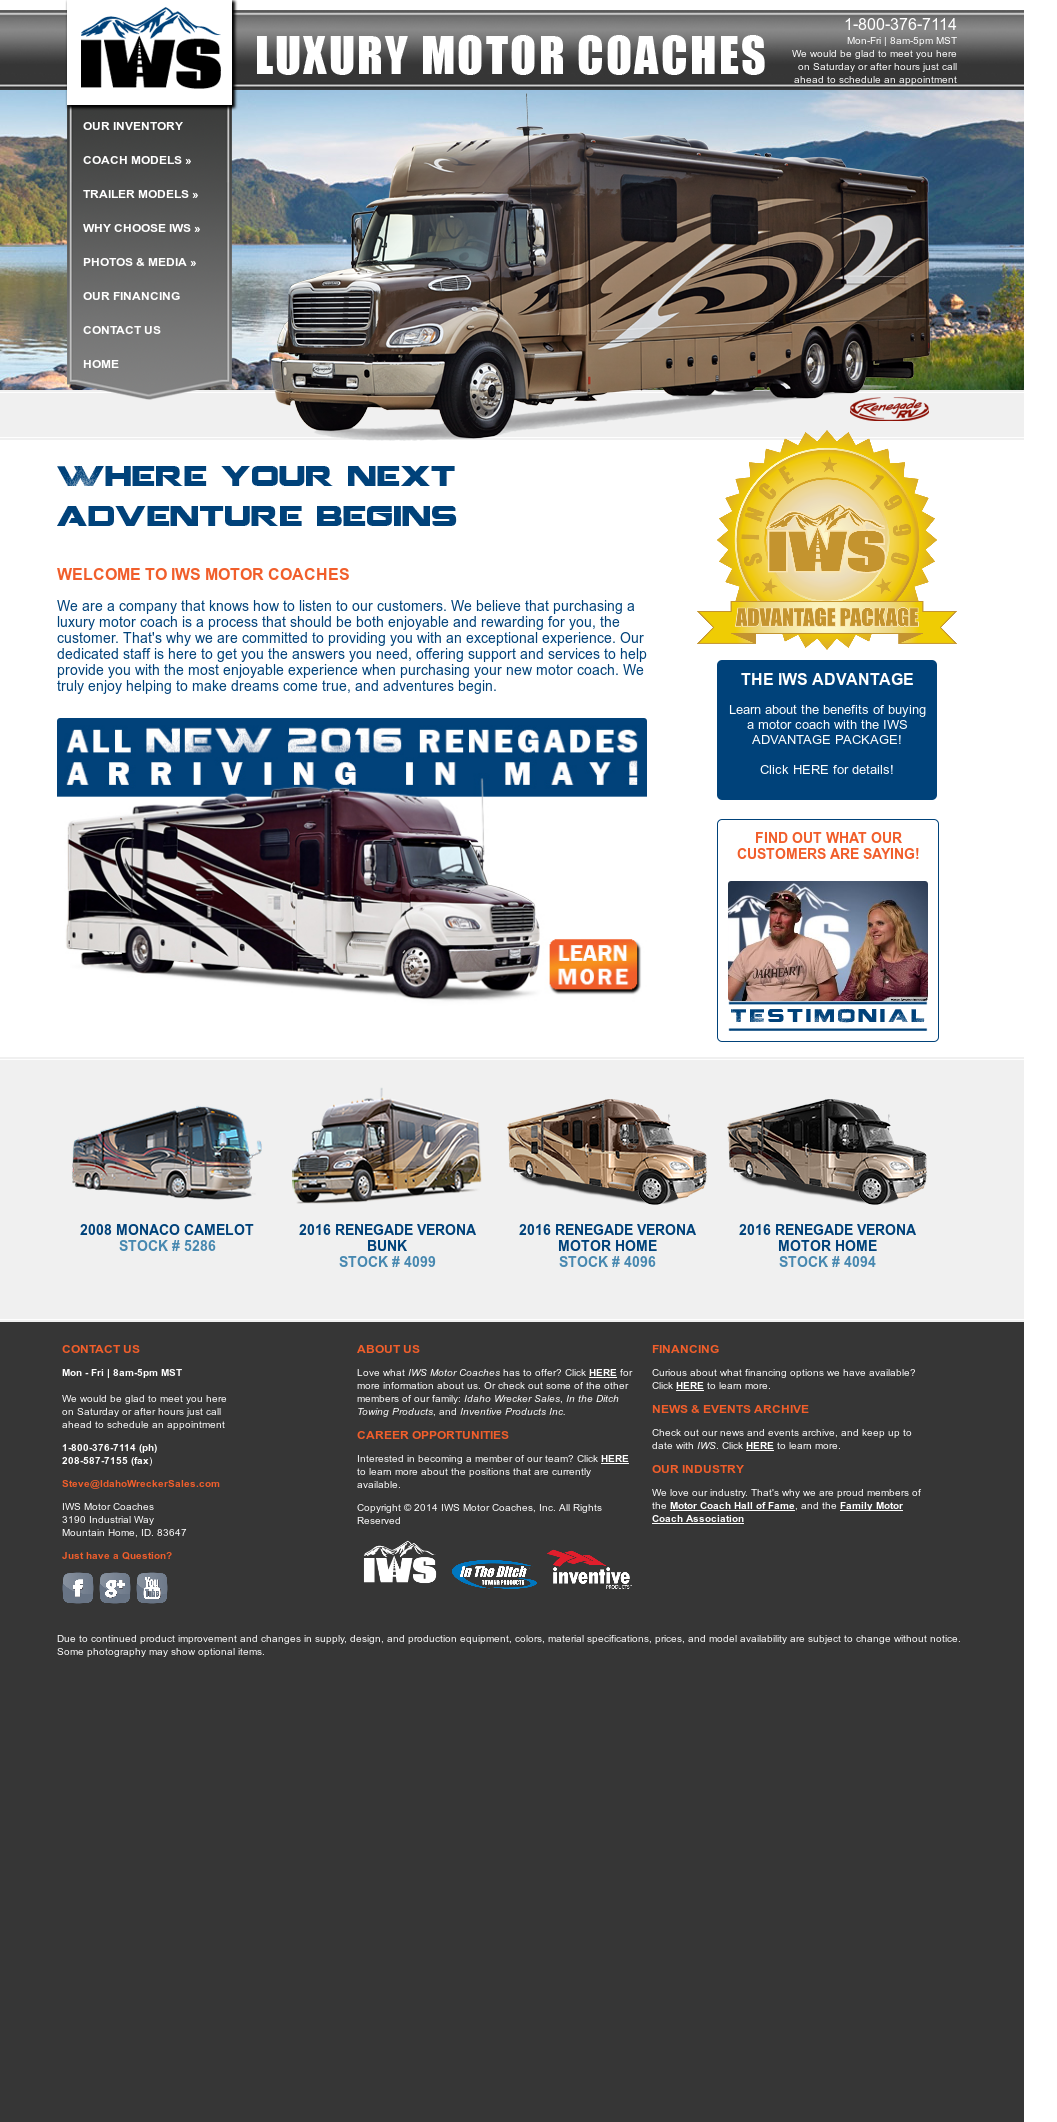 Iws Motor Coaches Competitors, Revenue and Employees - Owler